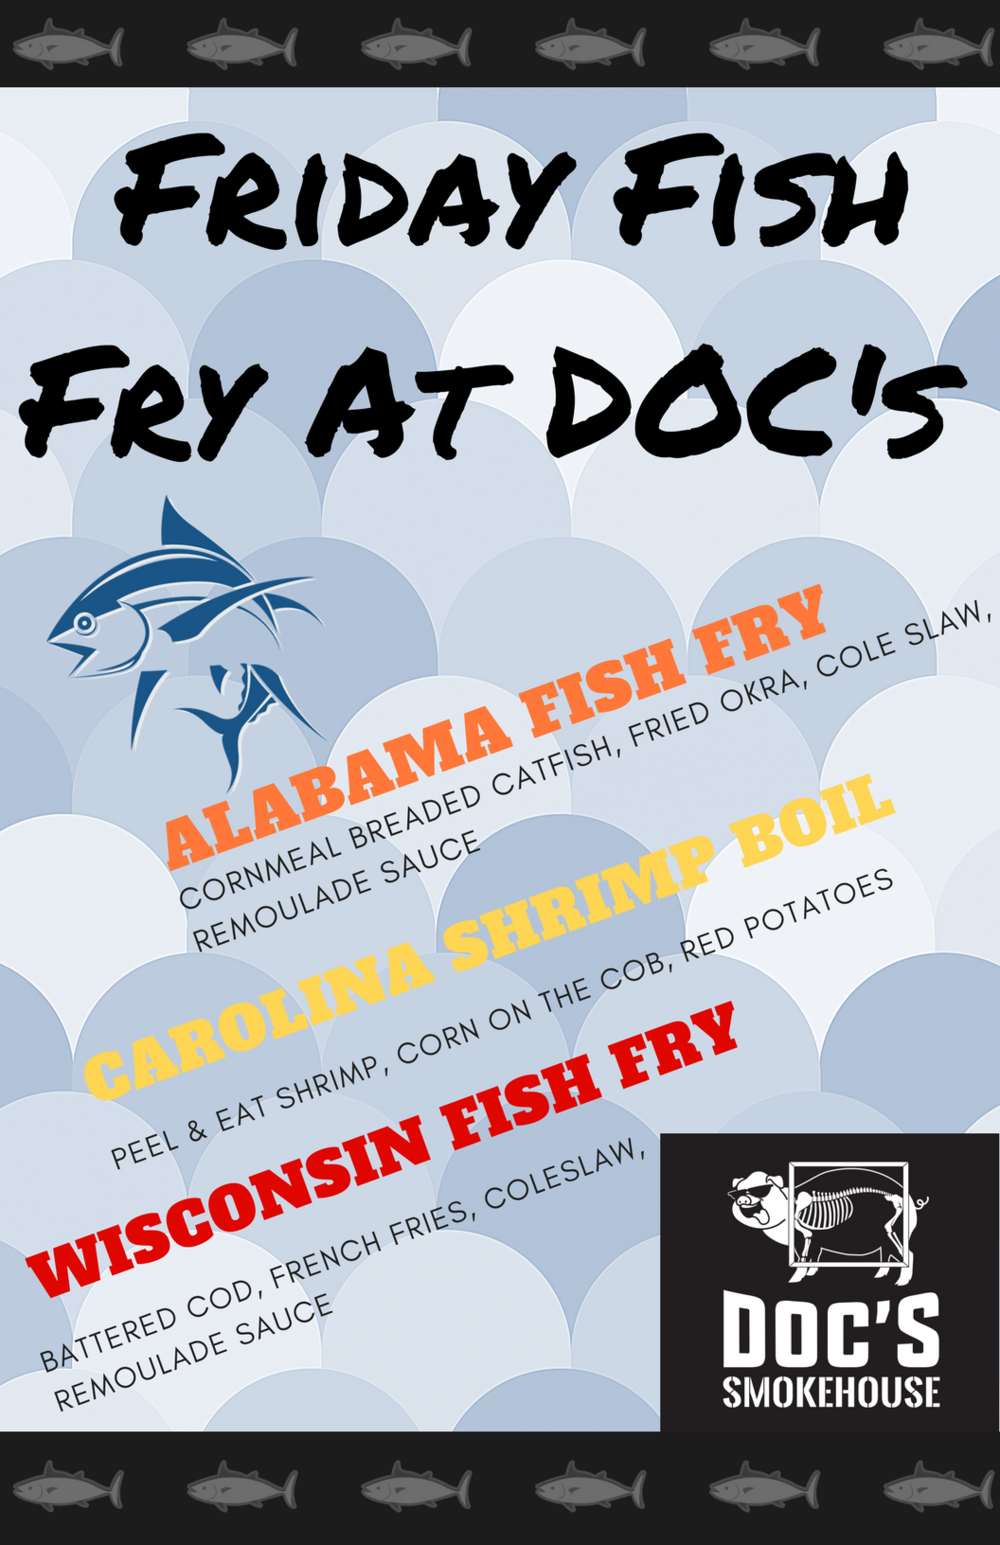 Dyer Friday fish fry At DOC's.png